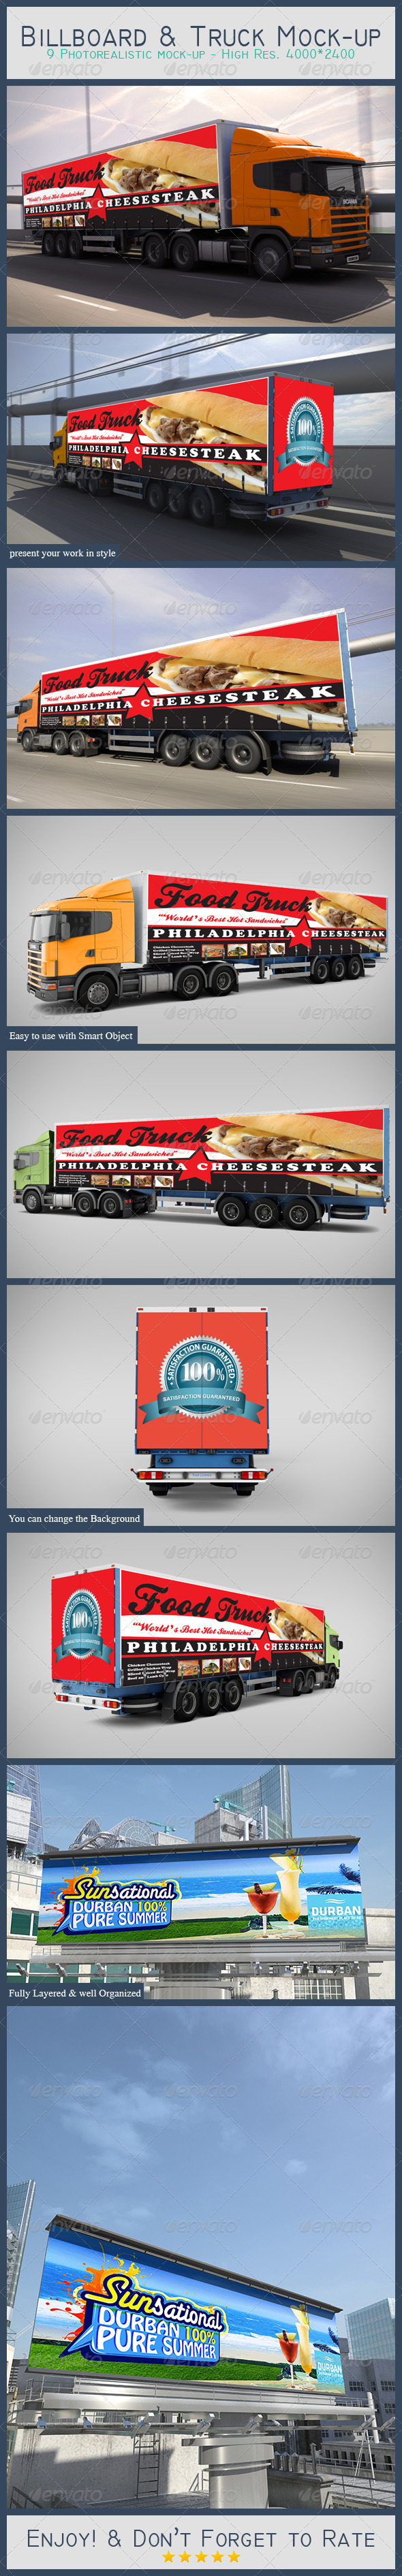 Billboard & Truck Mock-up - Print Product Mock-Ups